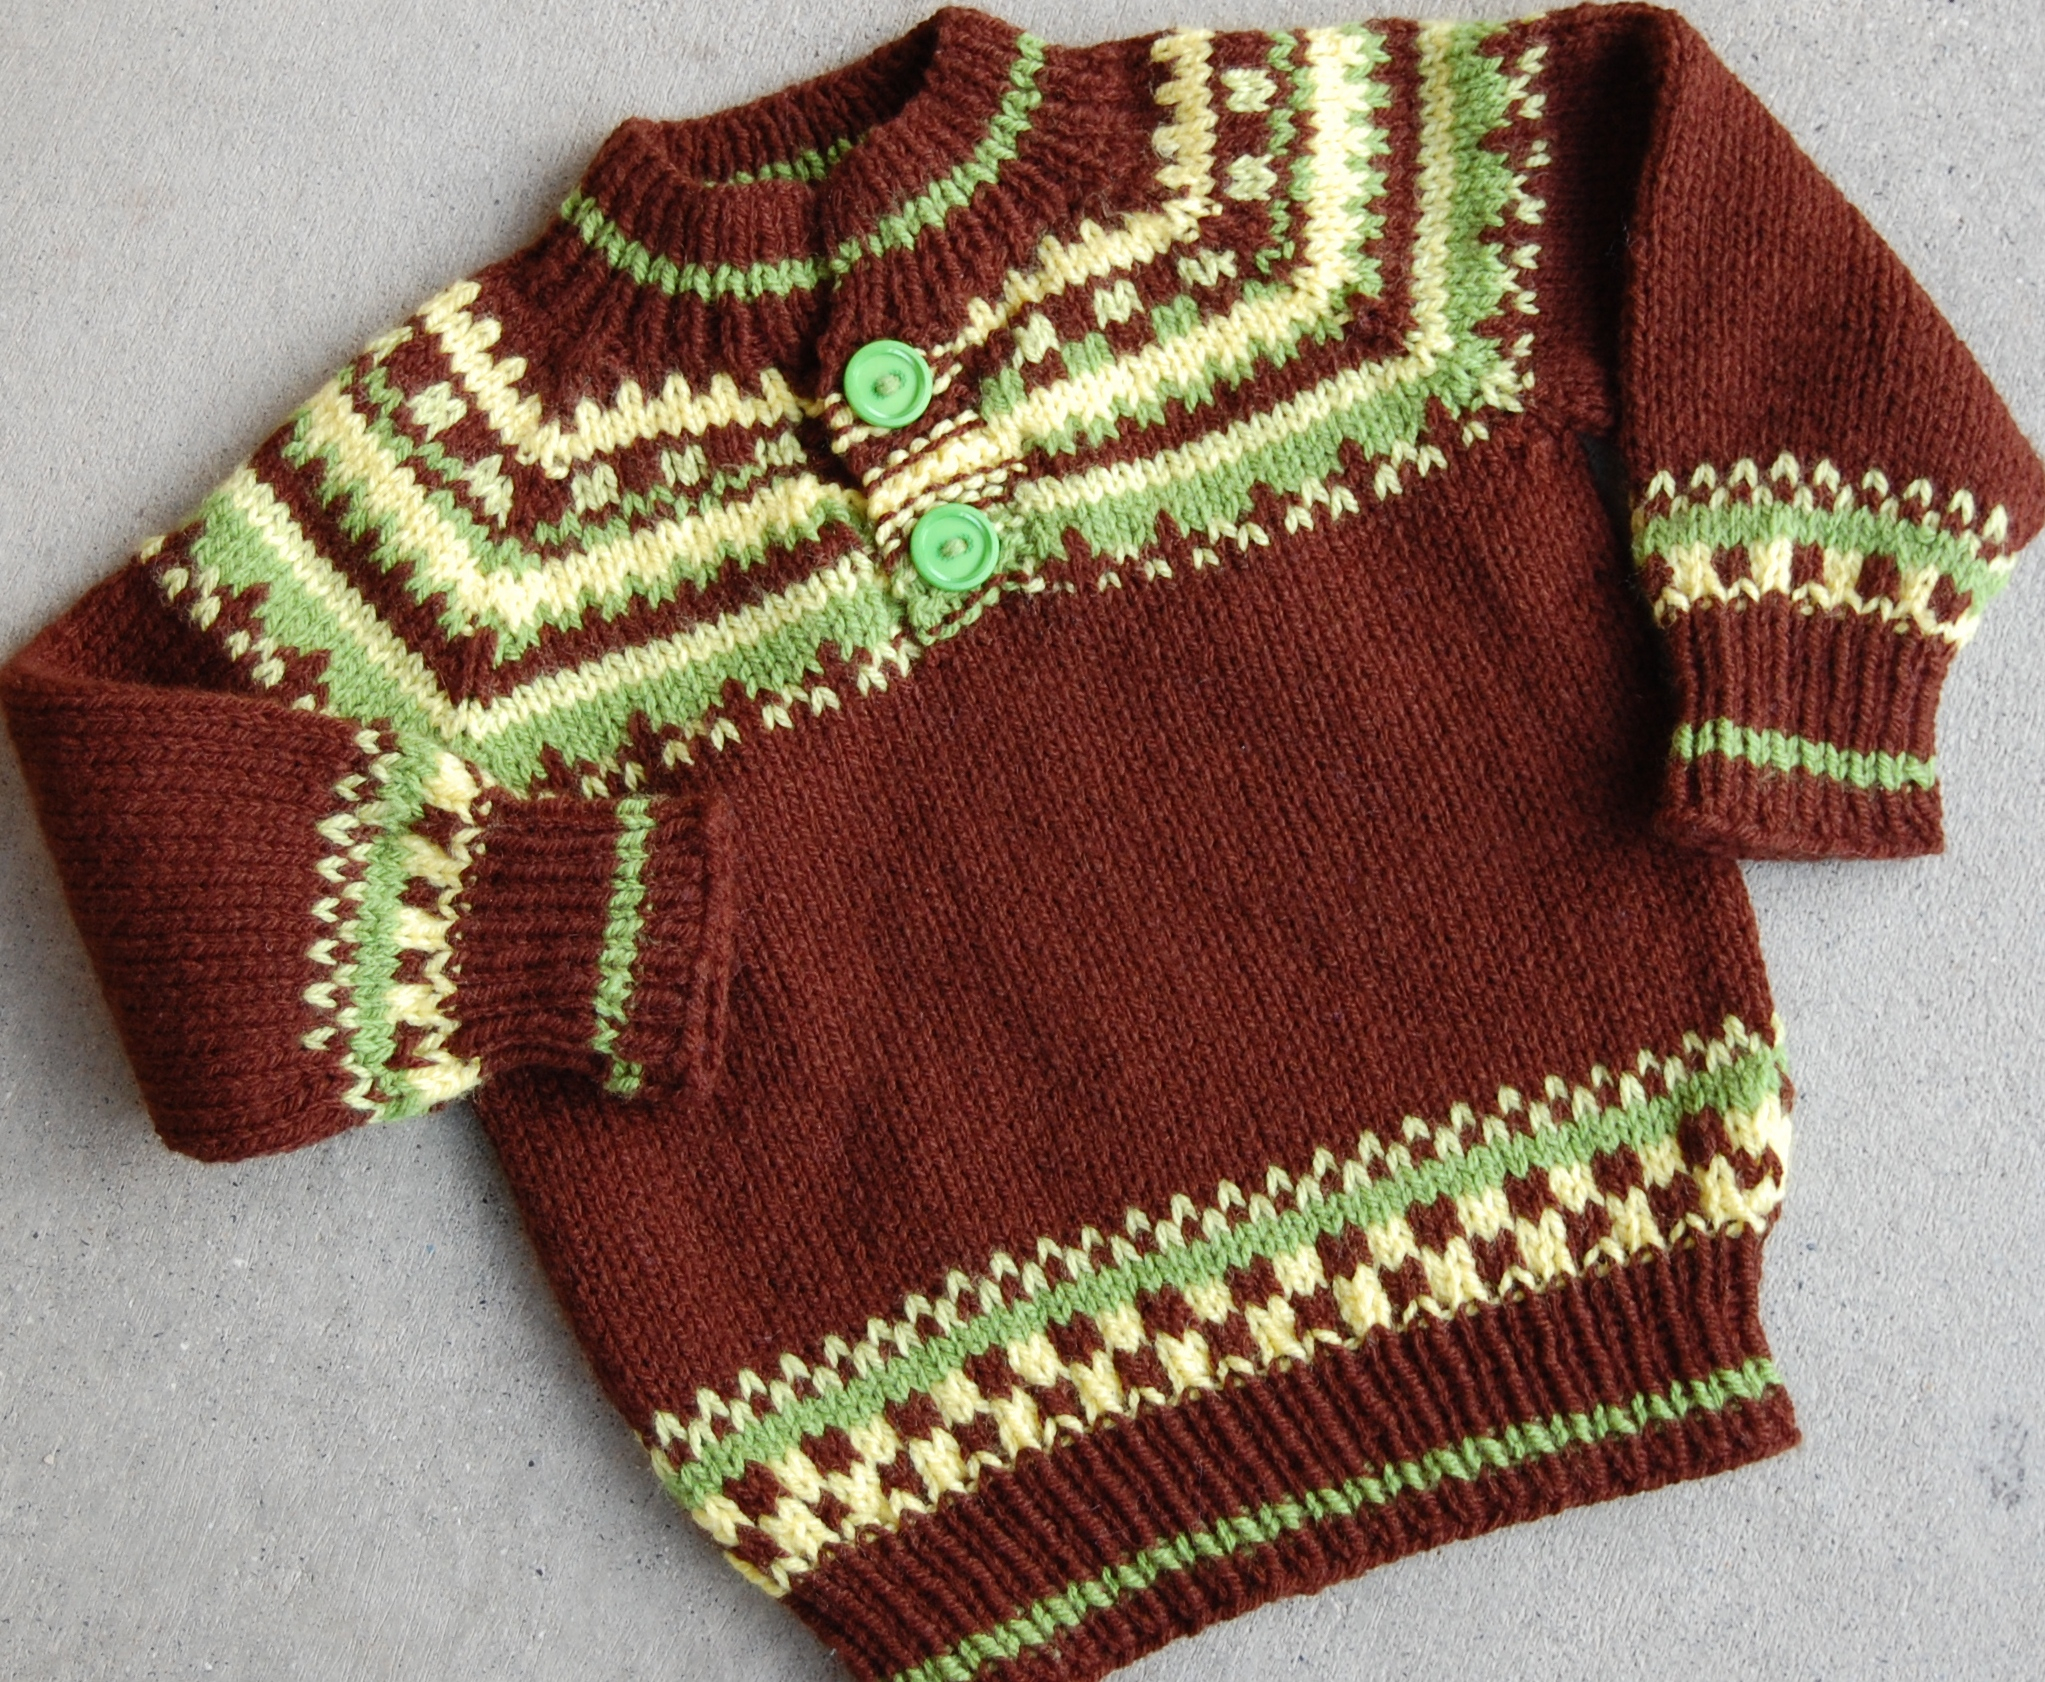 Knitted Childrens Sweaters Free Patterns Richdesigns Onepieceknitting